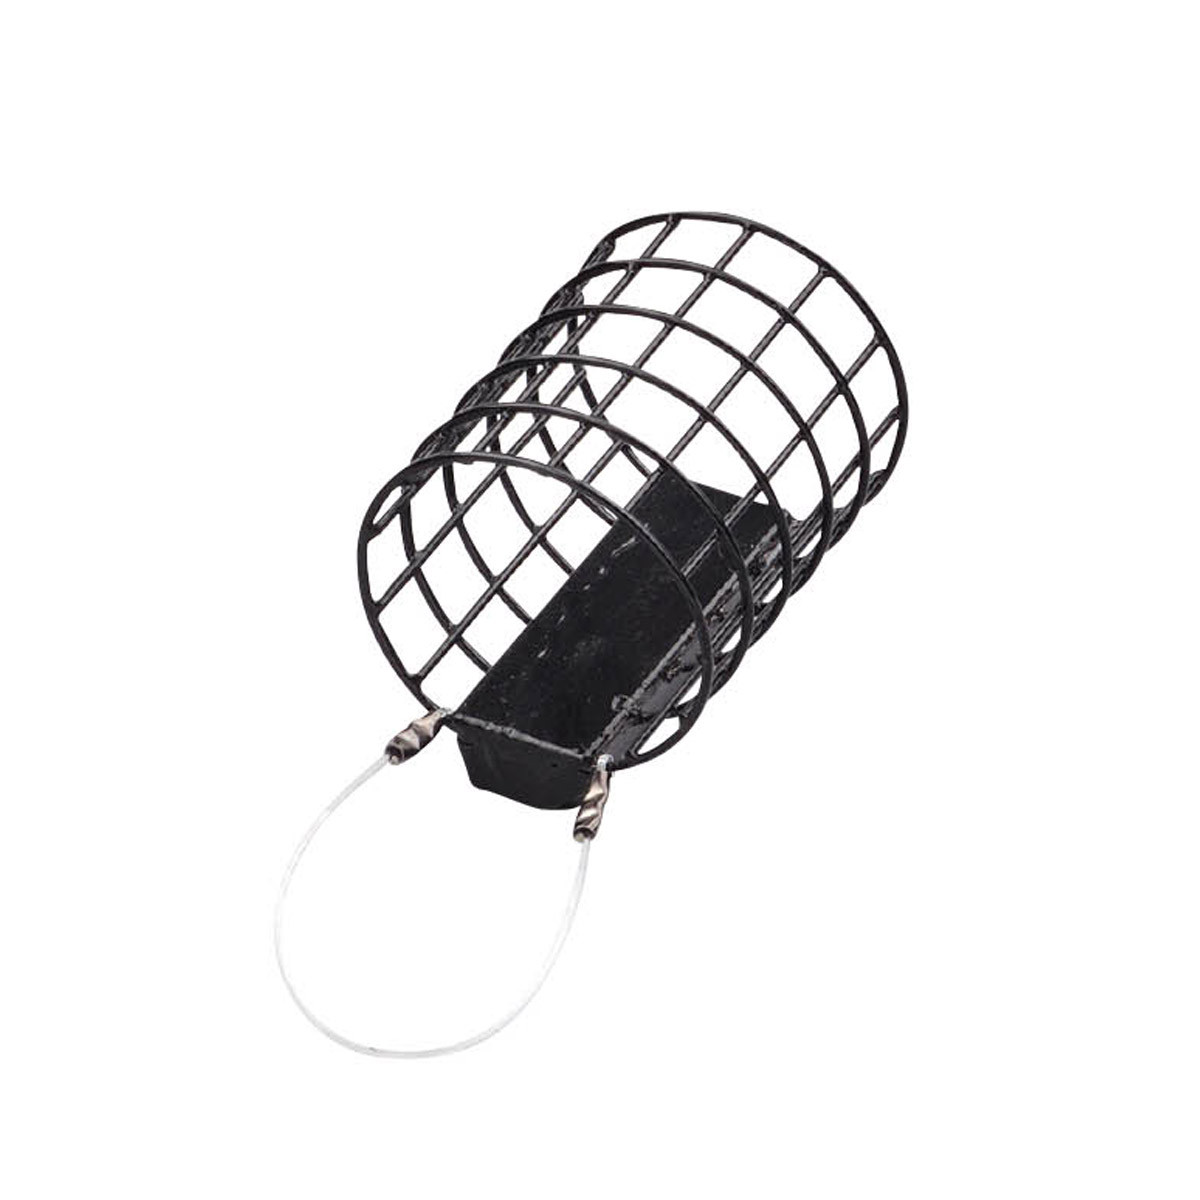 Spro Cresta Cage Feeder Extra Large